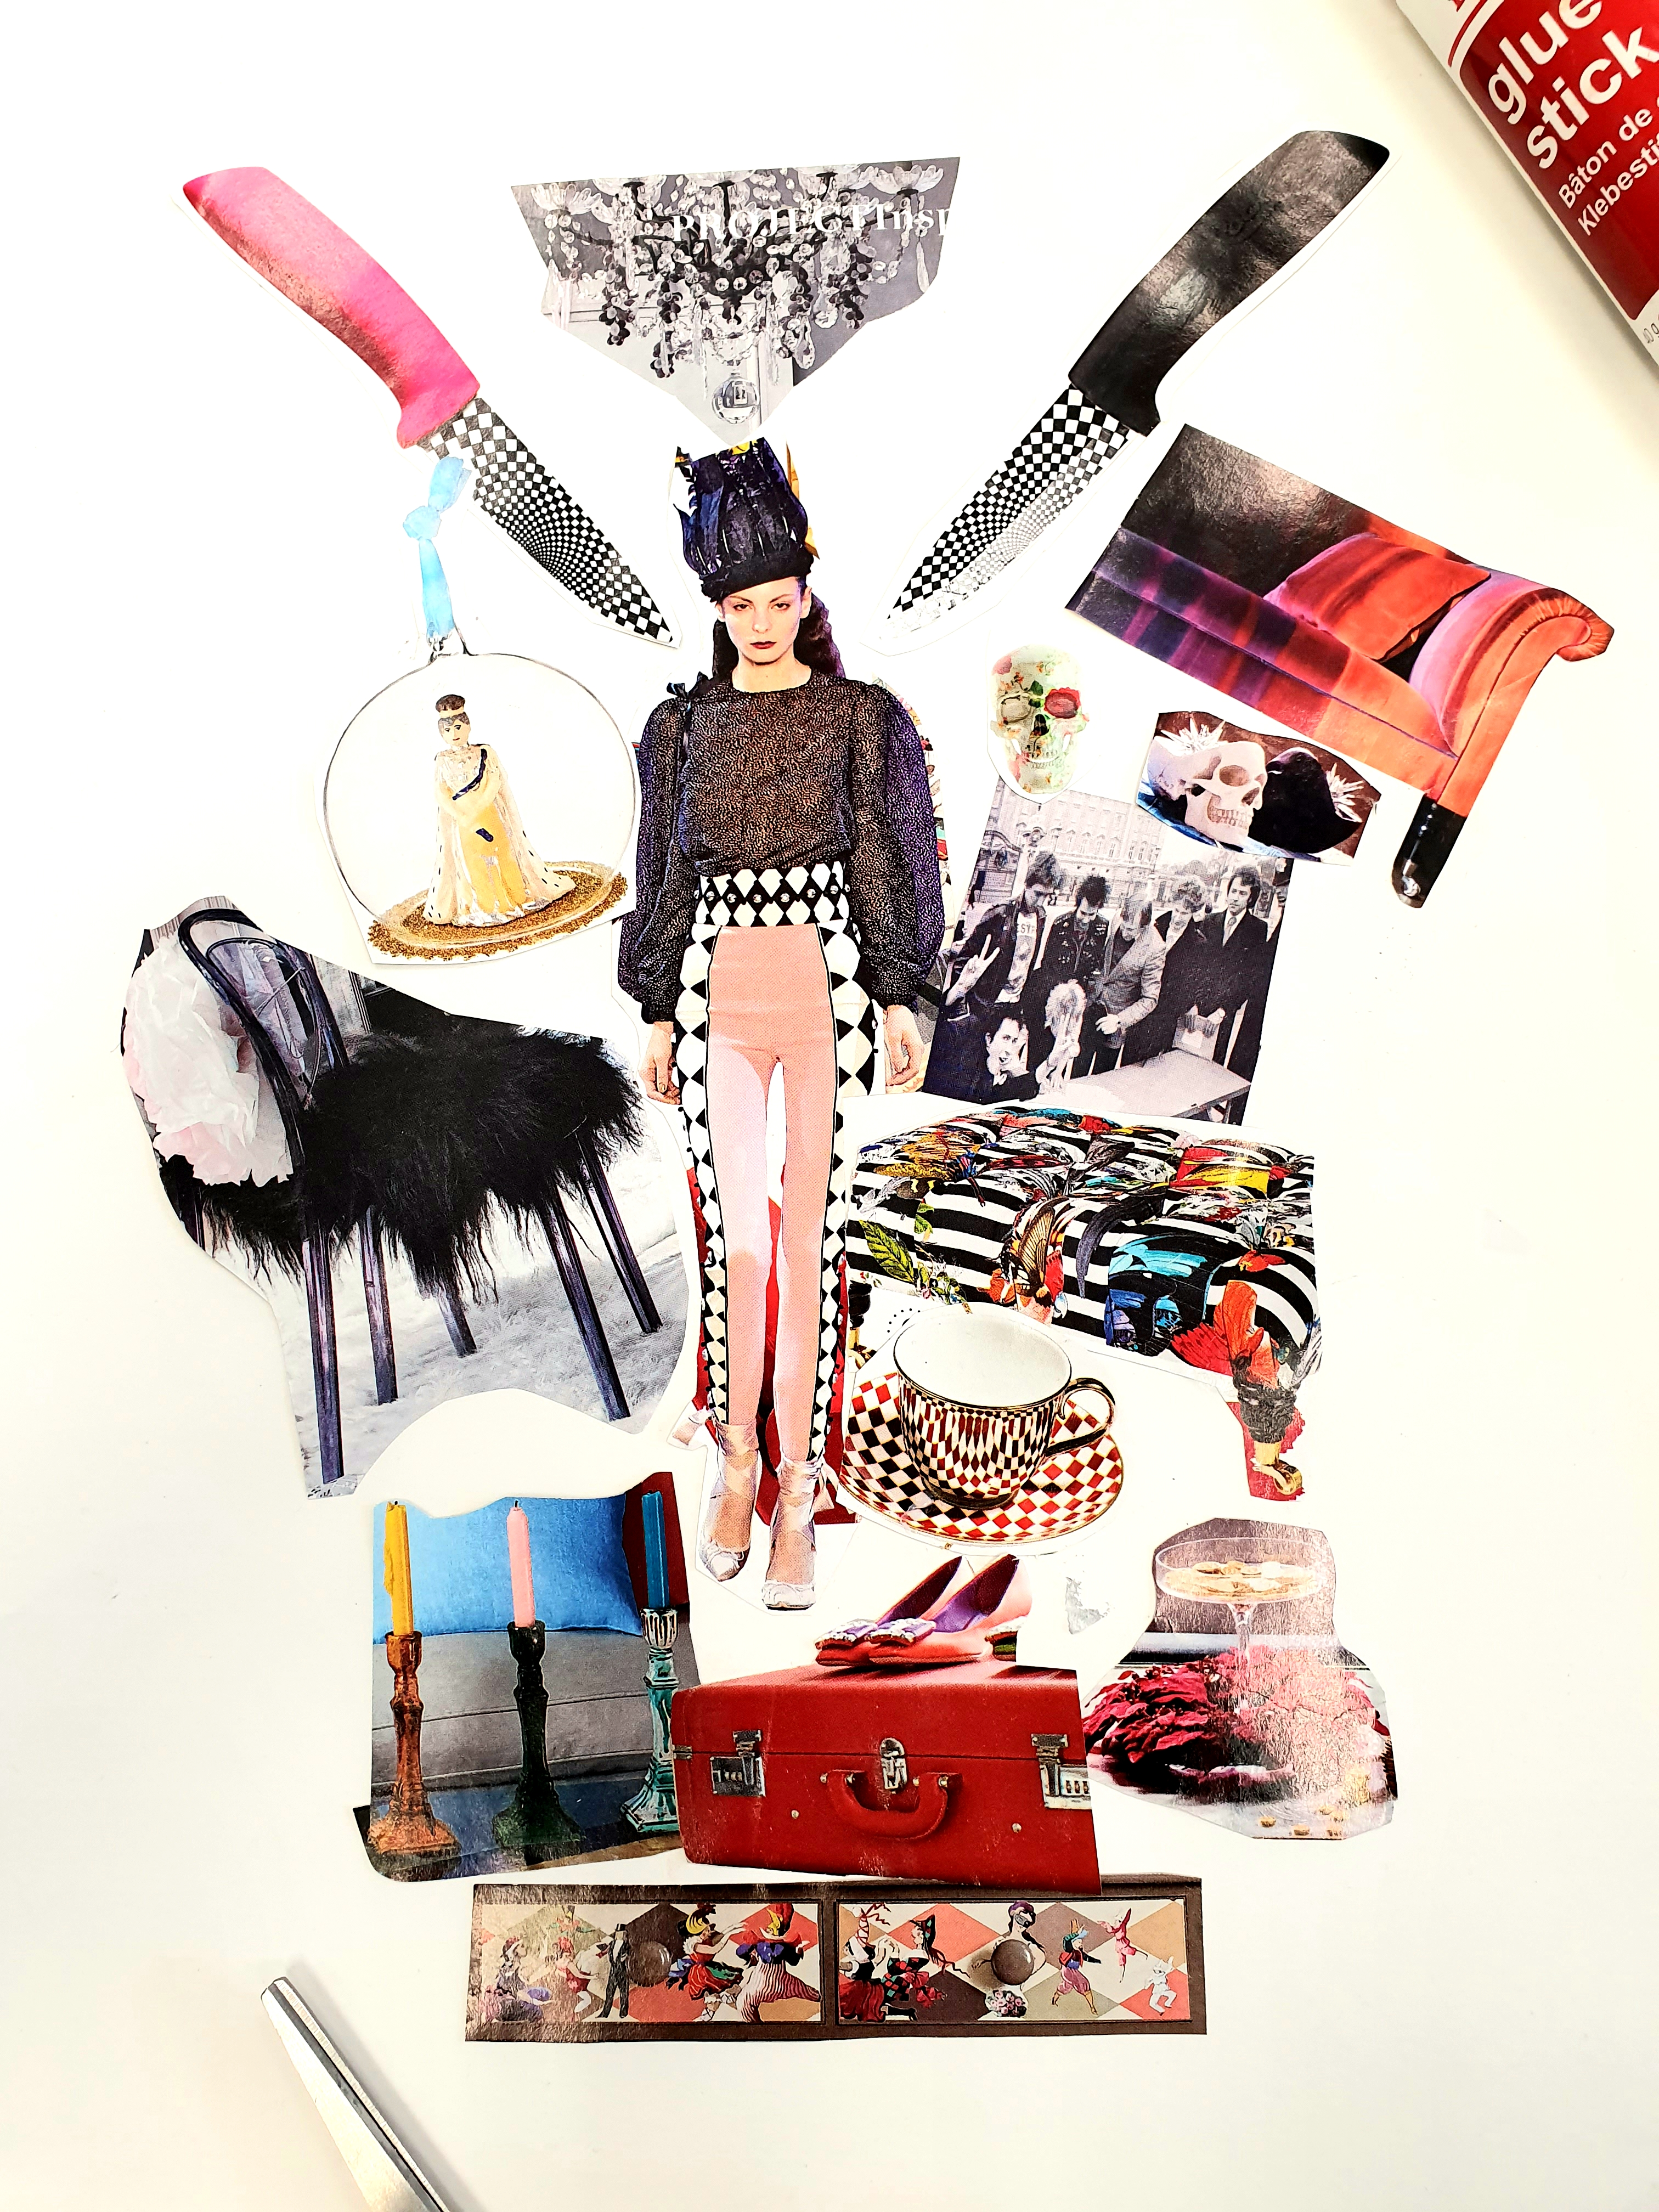 A portrait image of a mood board made of magazine cut outs with a model in the centre and luggage and different chairs surrounding the model.